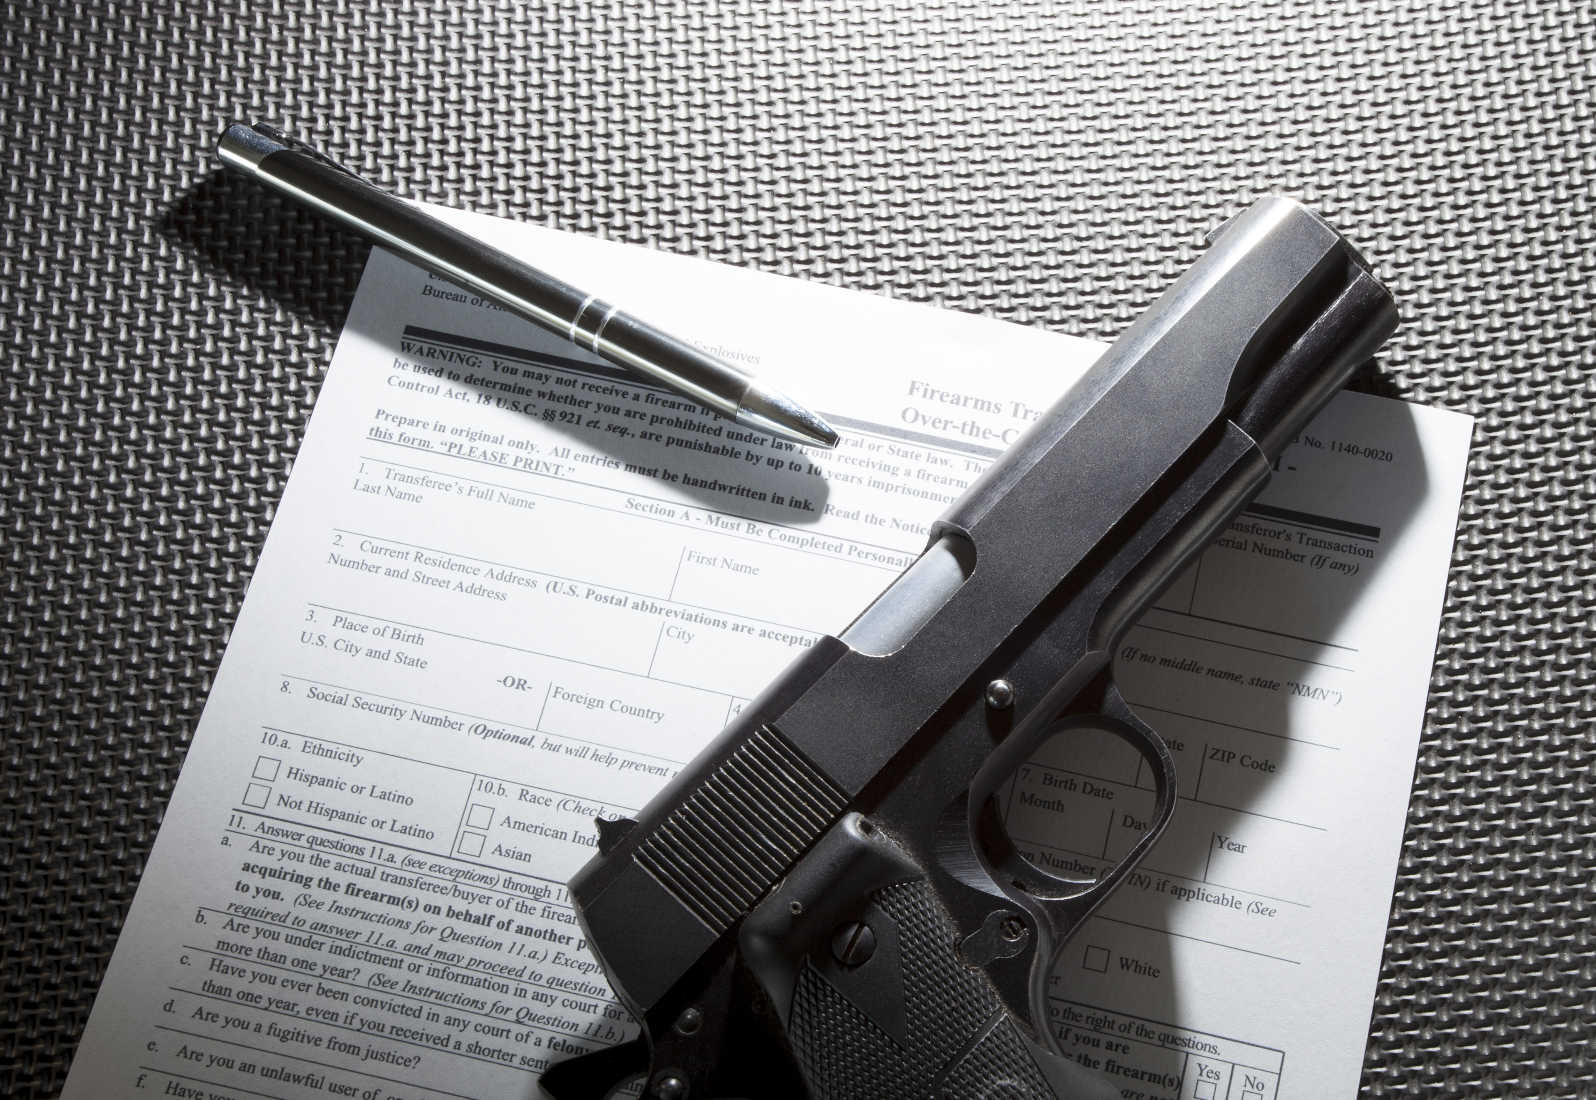 REPORT: More Americans Being Added to Background Check 'Prohibited' List without Due Process